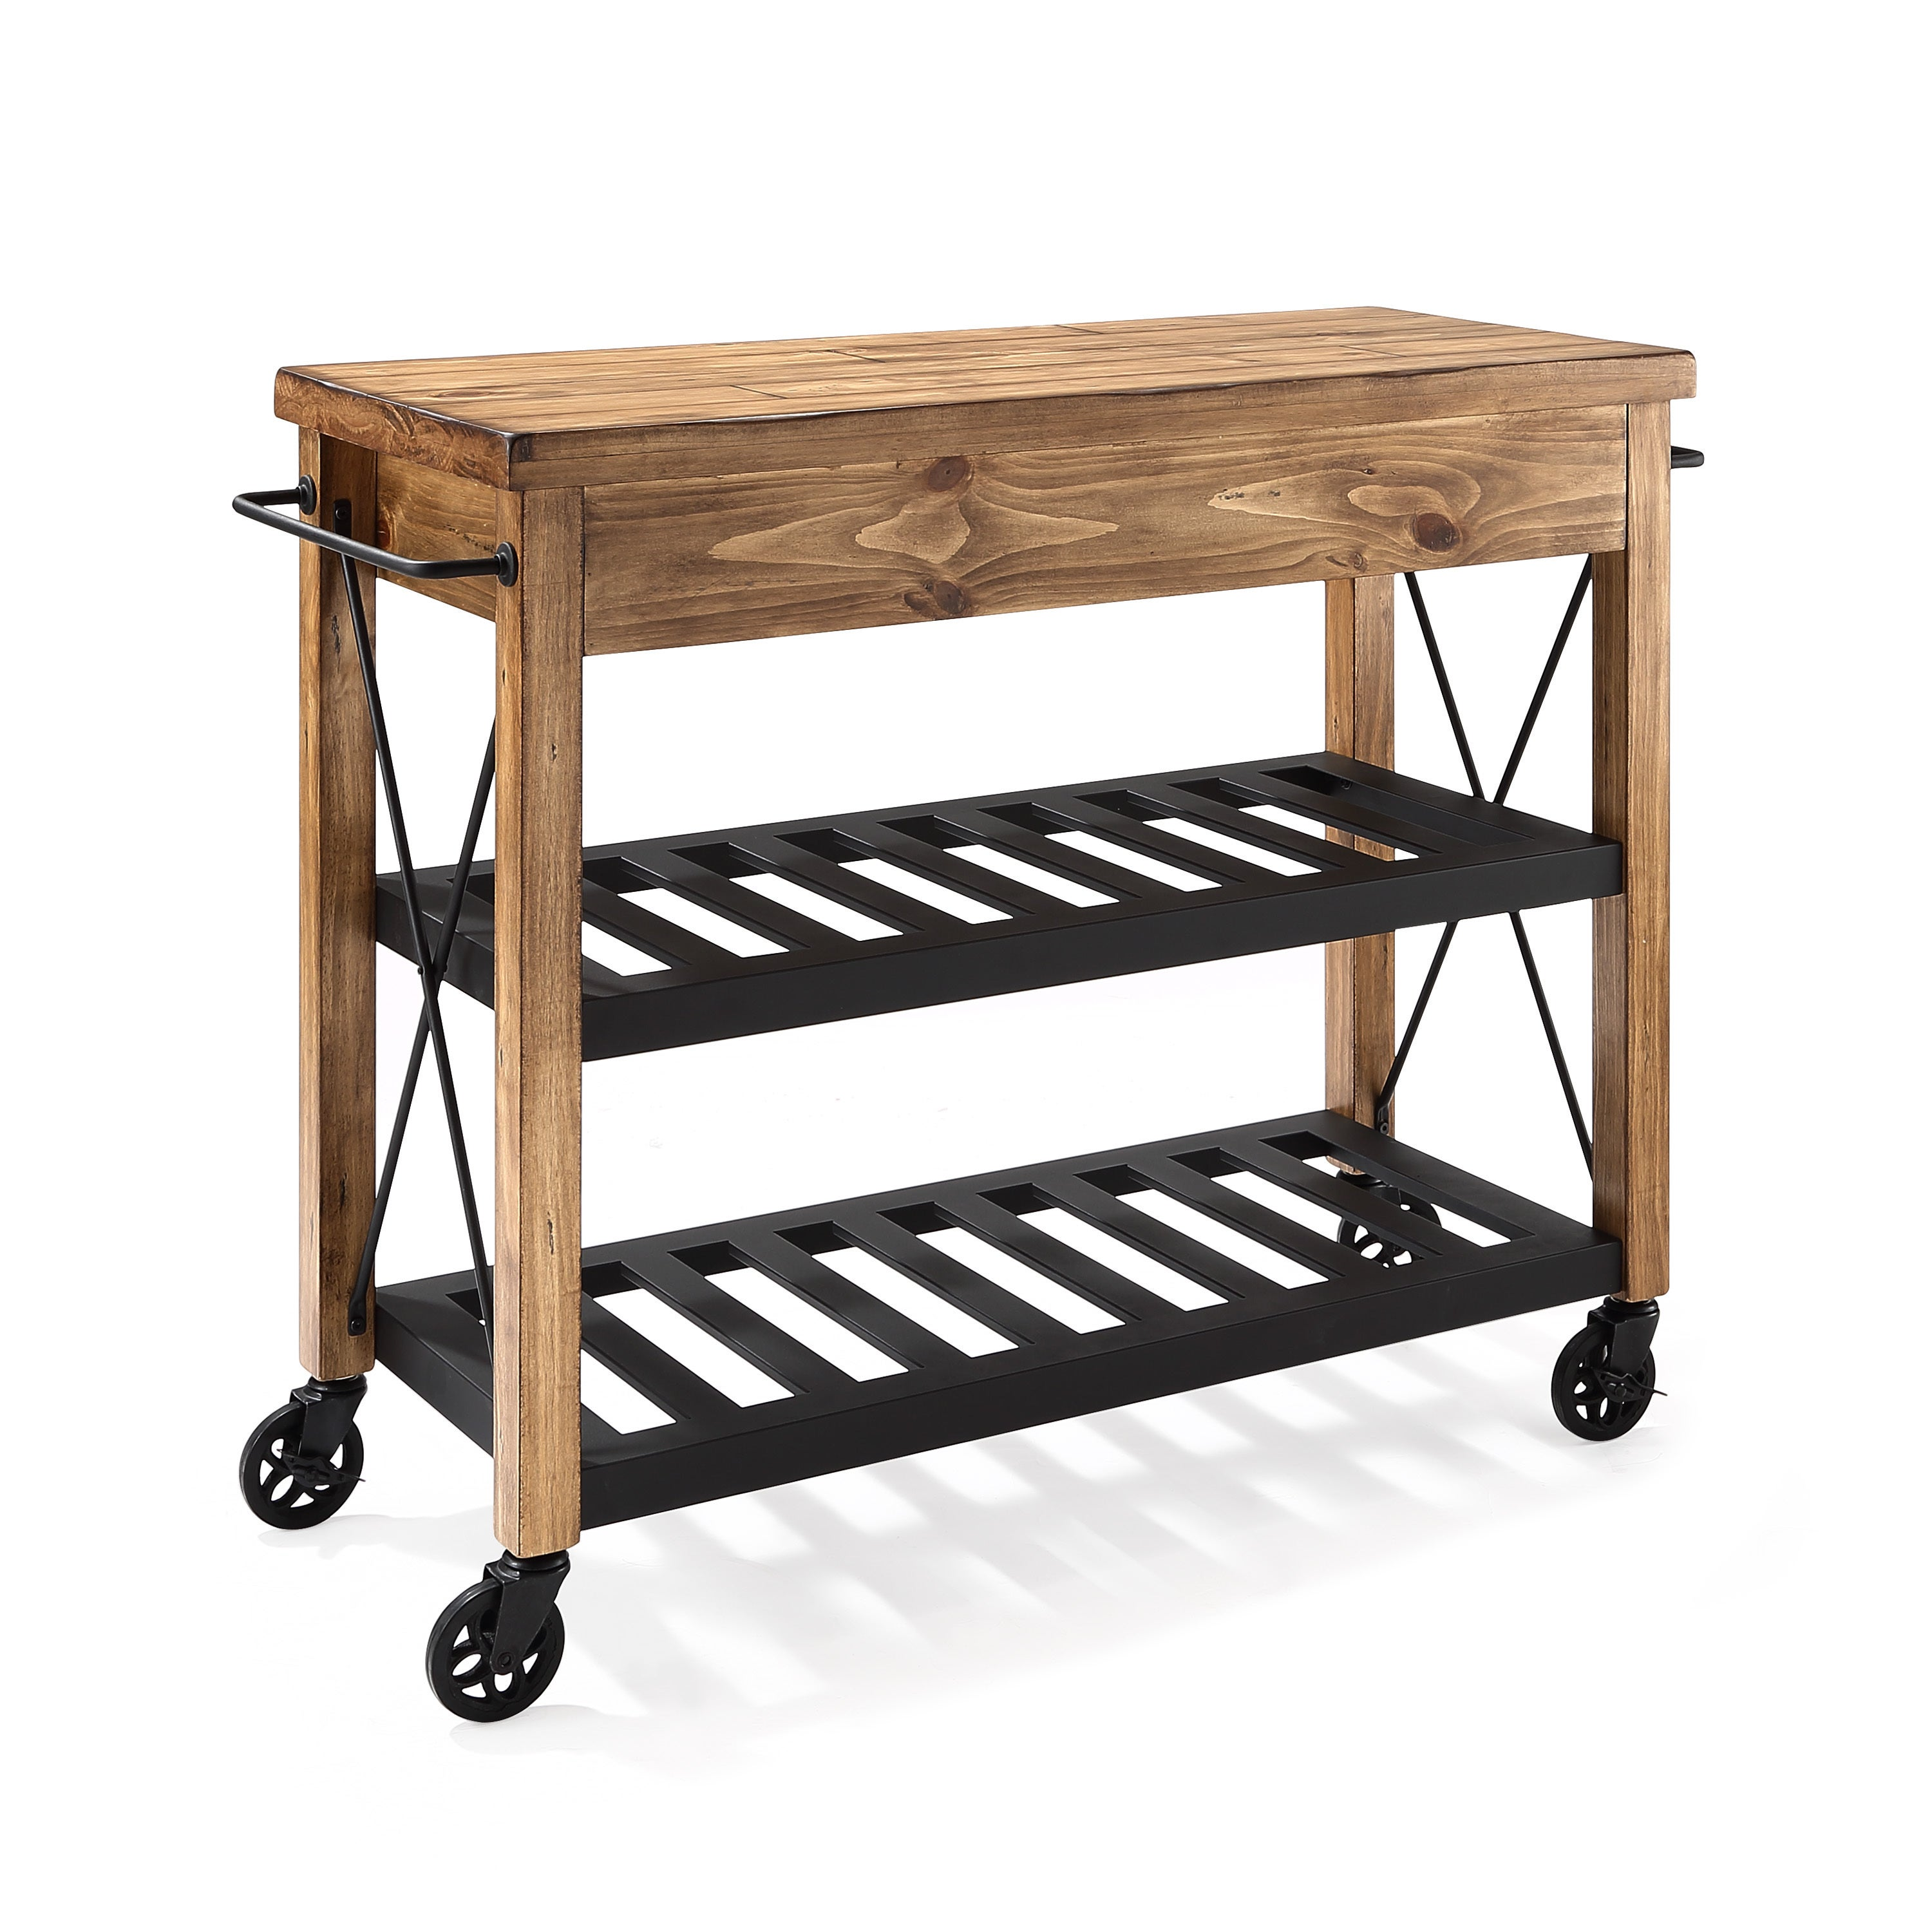 uk sch cabinet pin with sobuy amazon kitchen trolley wood and black wheels stainless cart lockable island steel co metal surface storage